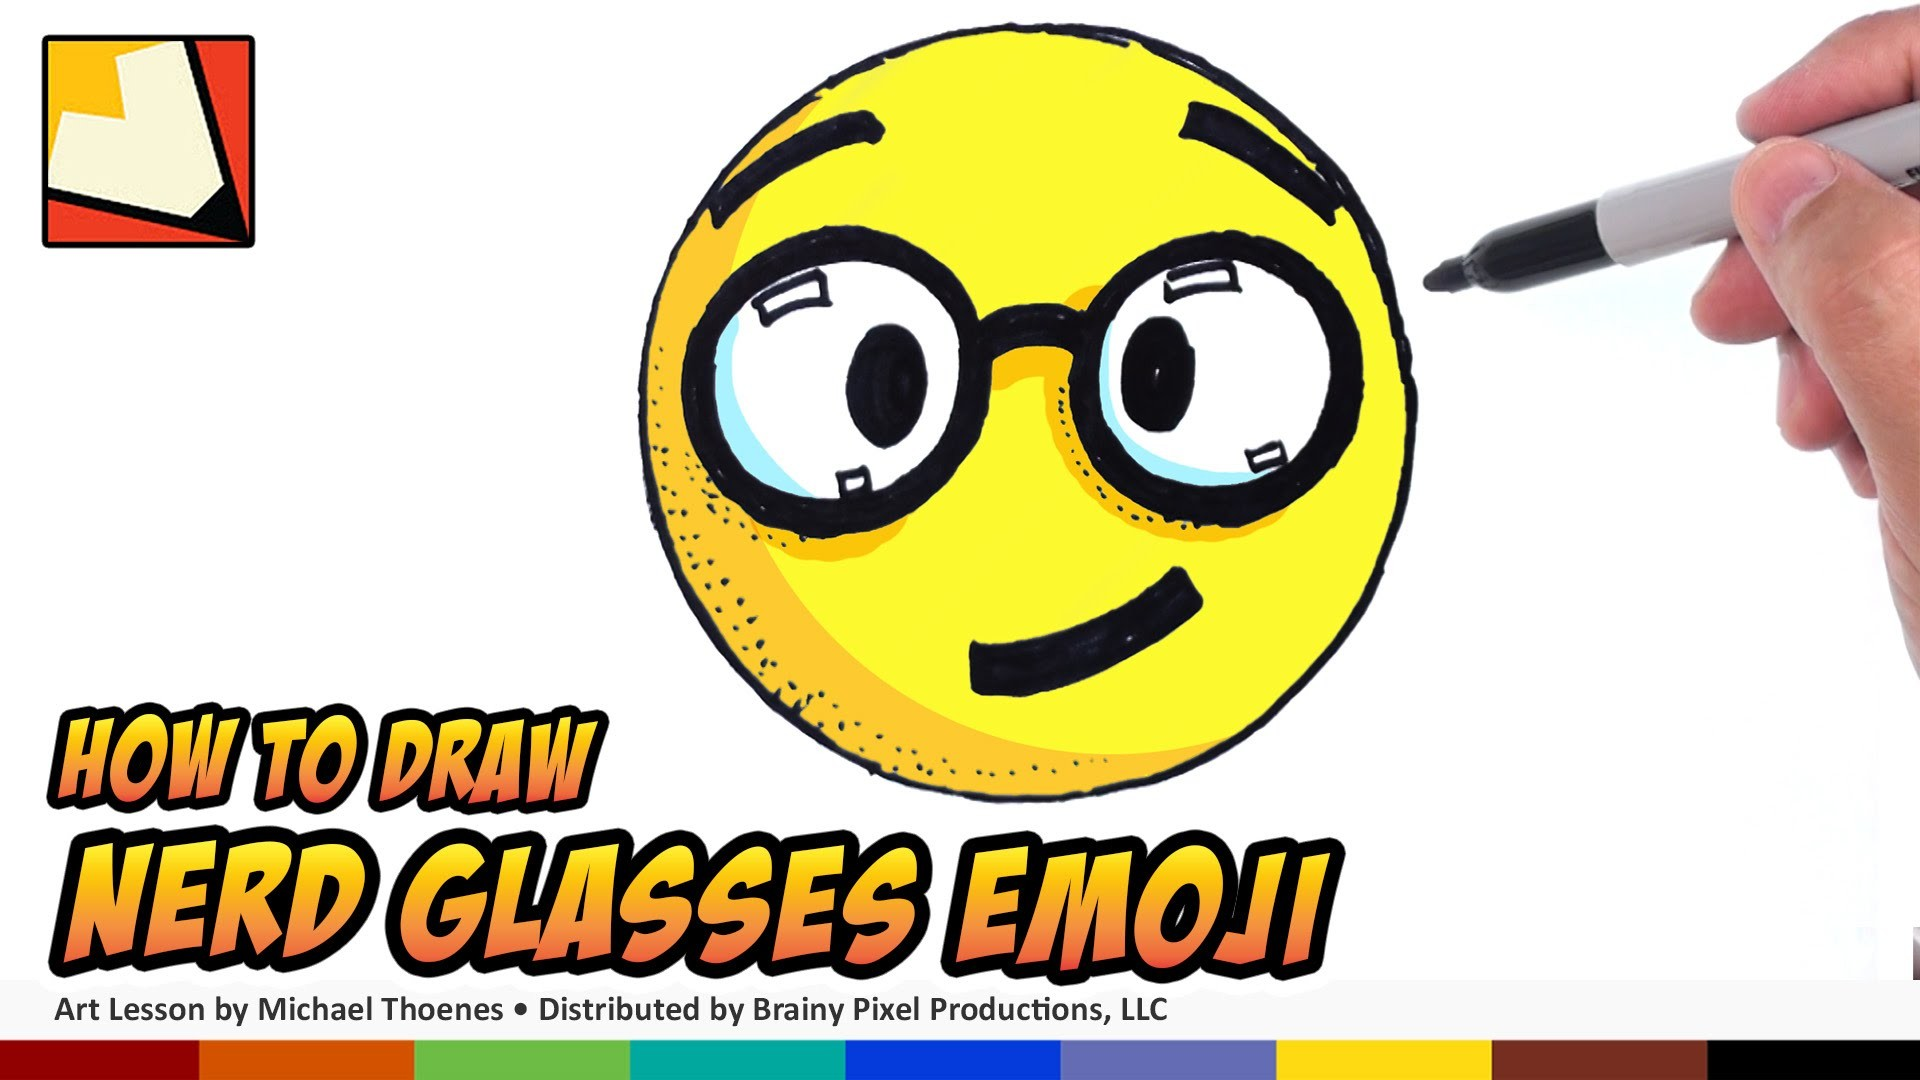 How to Draw Emojis - Nerd With Glasses Emoji - Step by Step for Beginners | BP